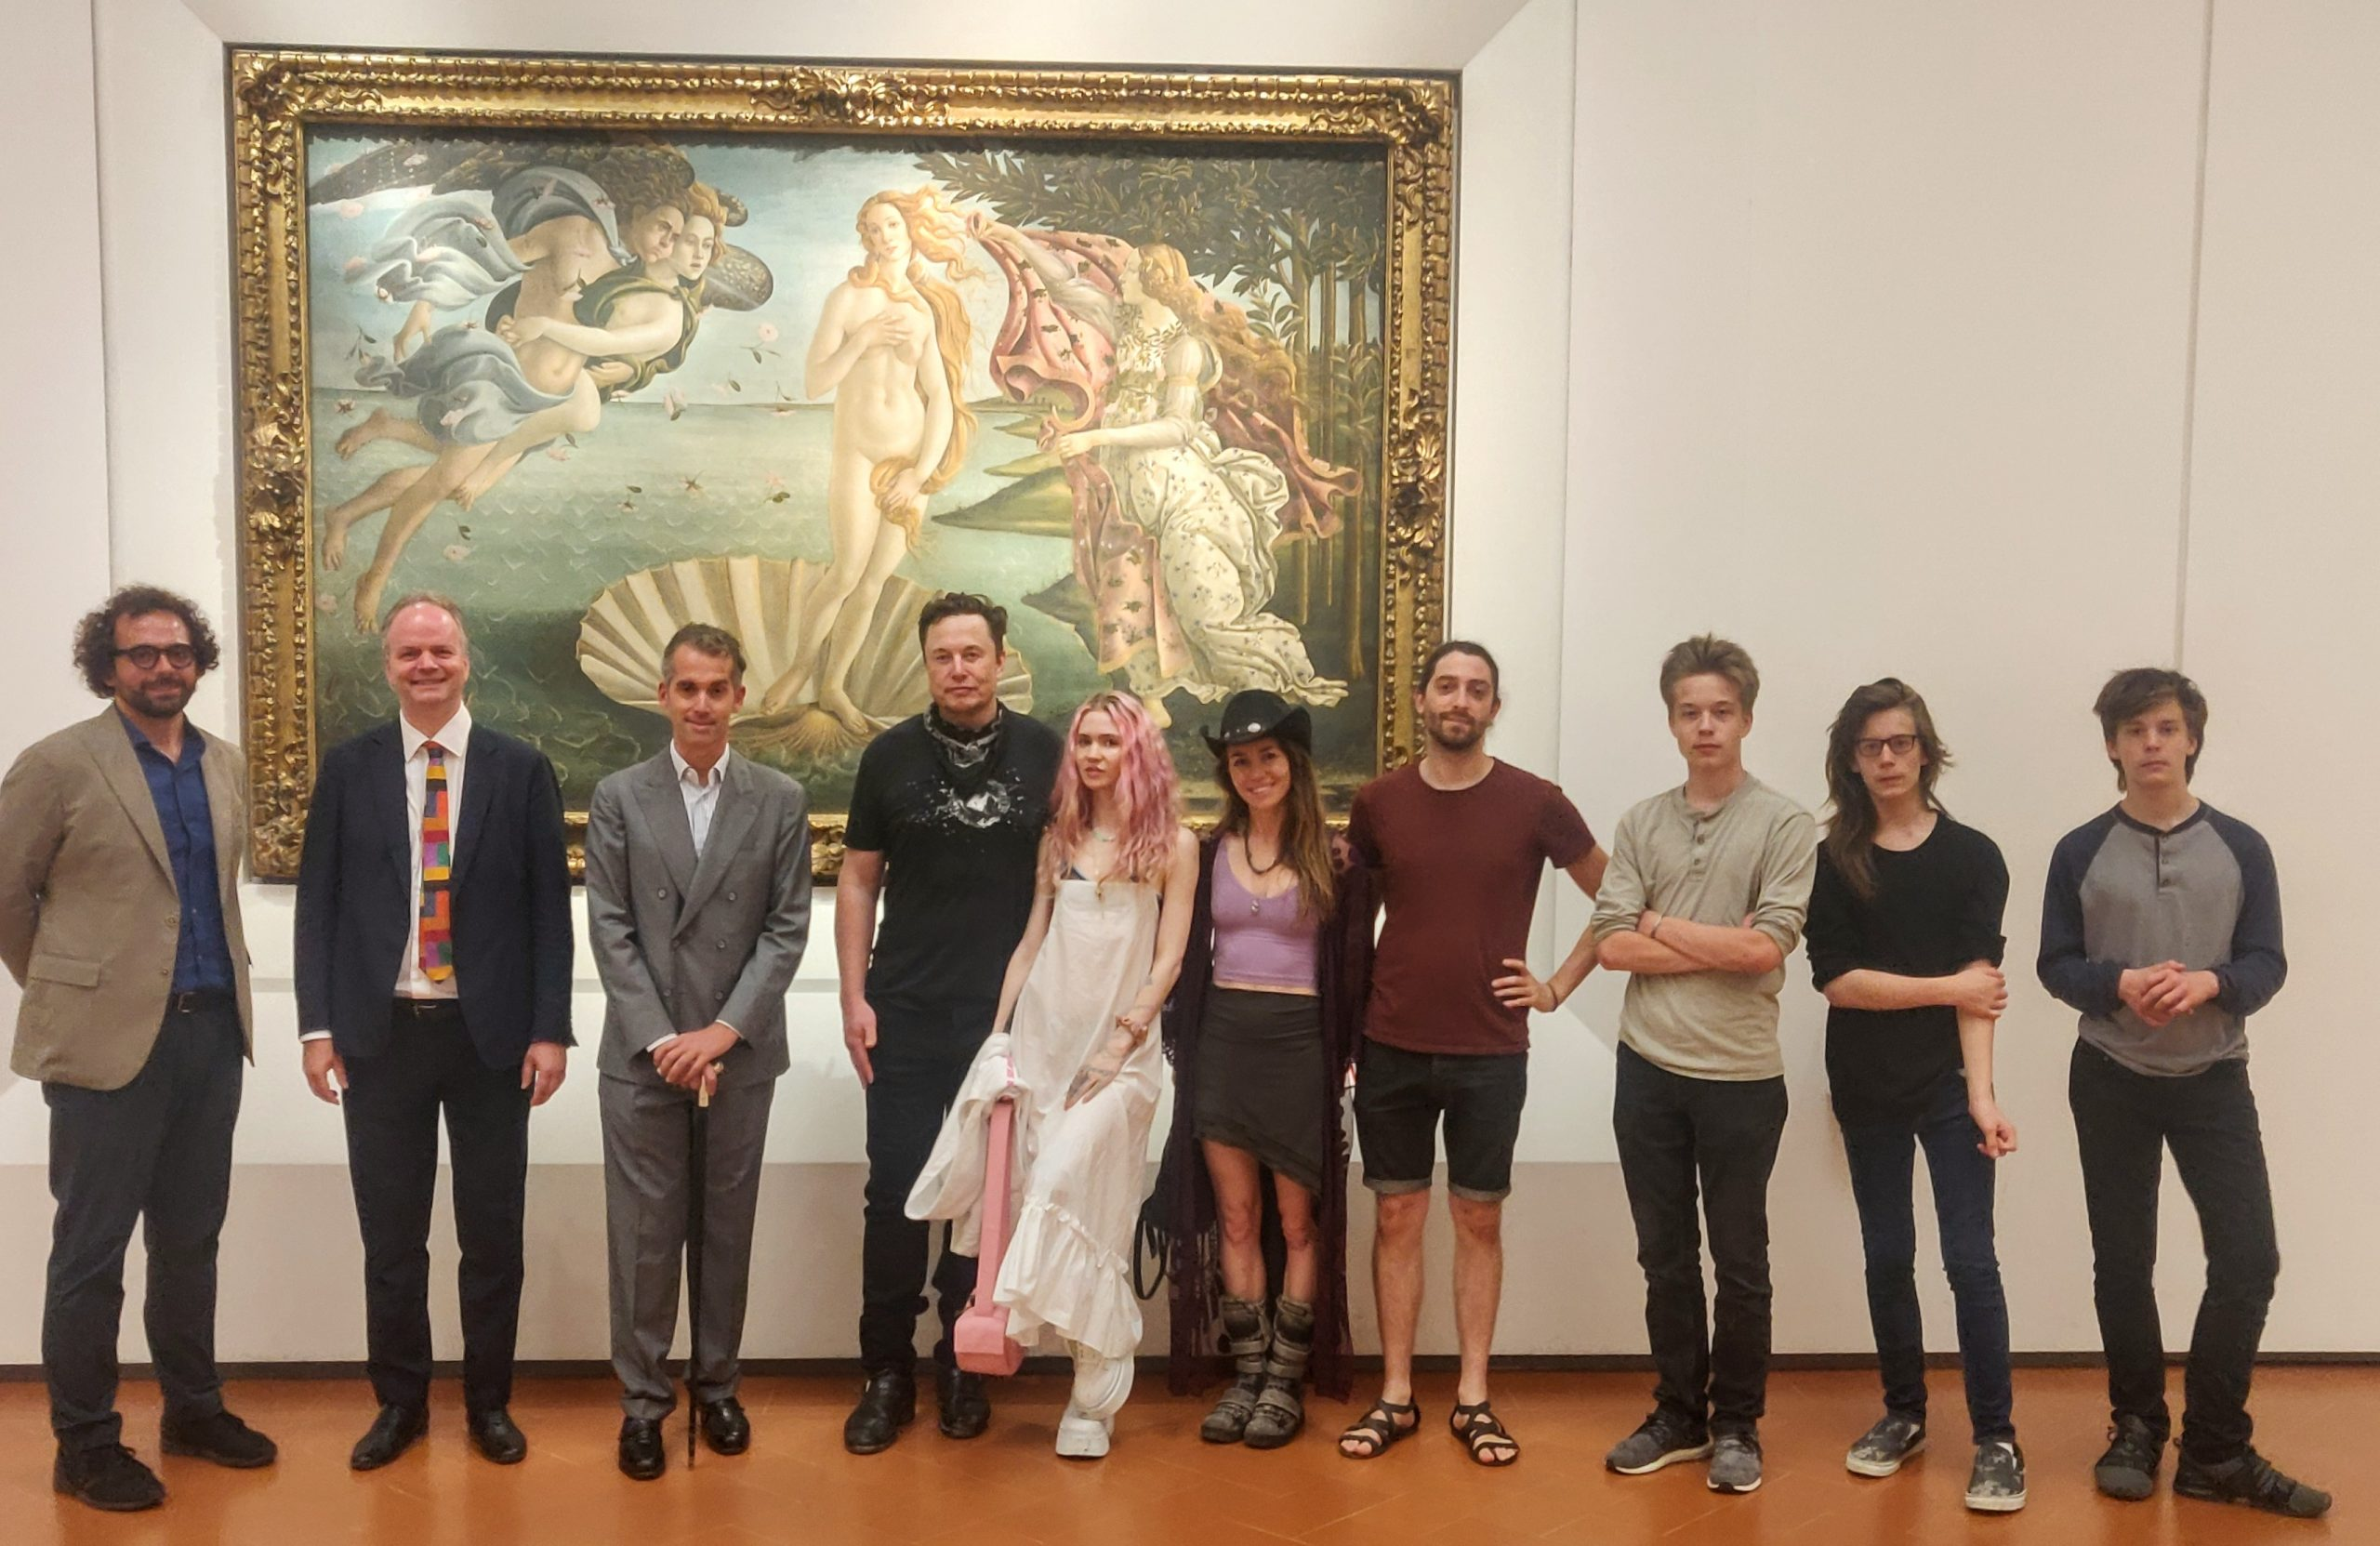 Art Industry News: Elon Musk Made a Surprise Visit to the Uffizi to Study a Sculpture of a Dying Roman Emperor + Other Stories